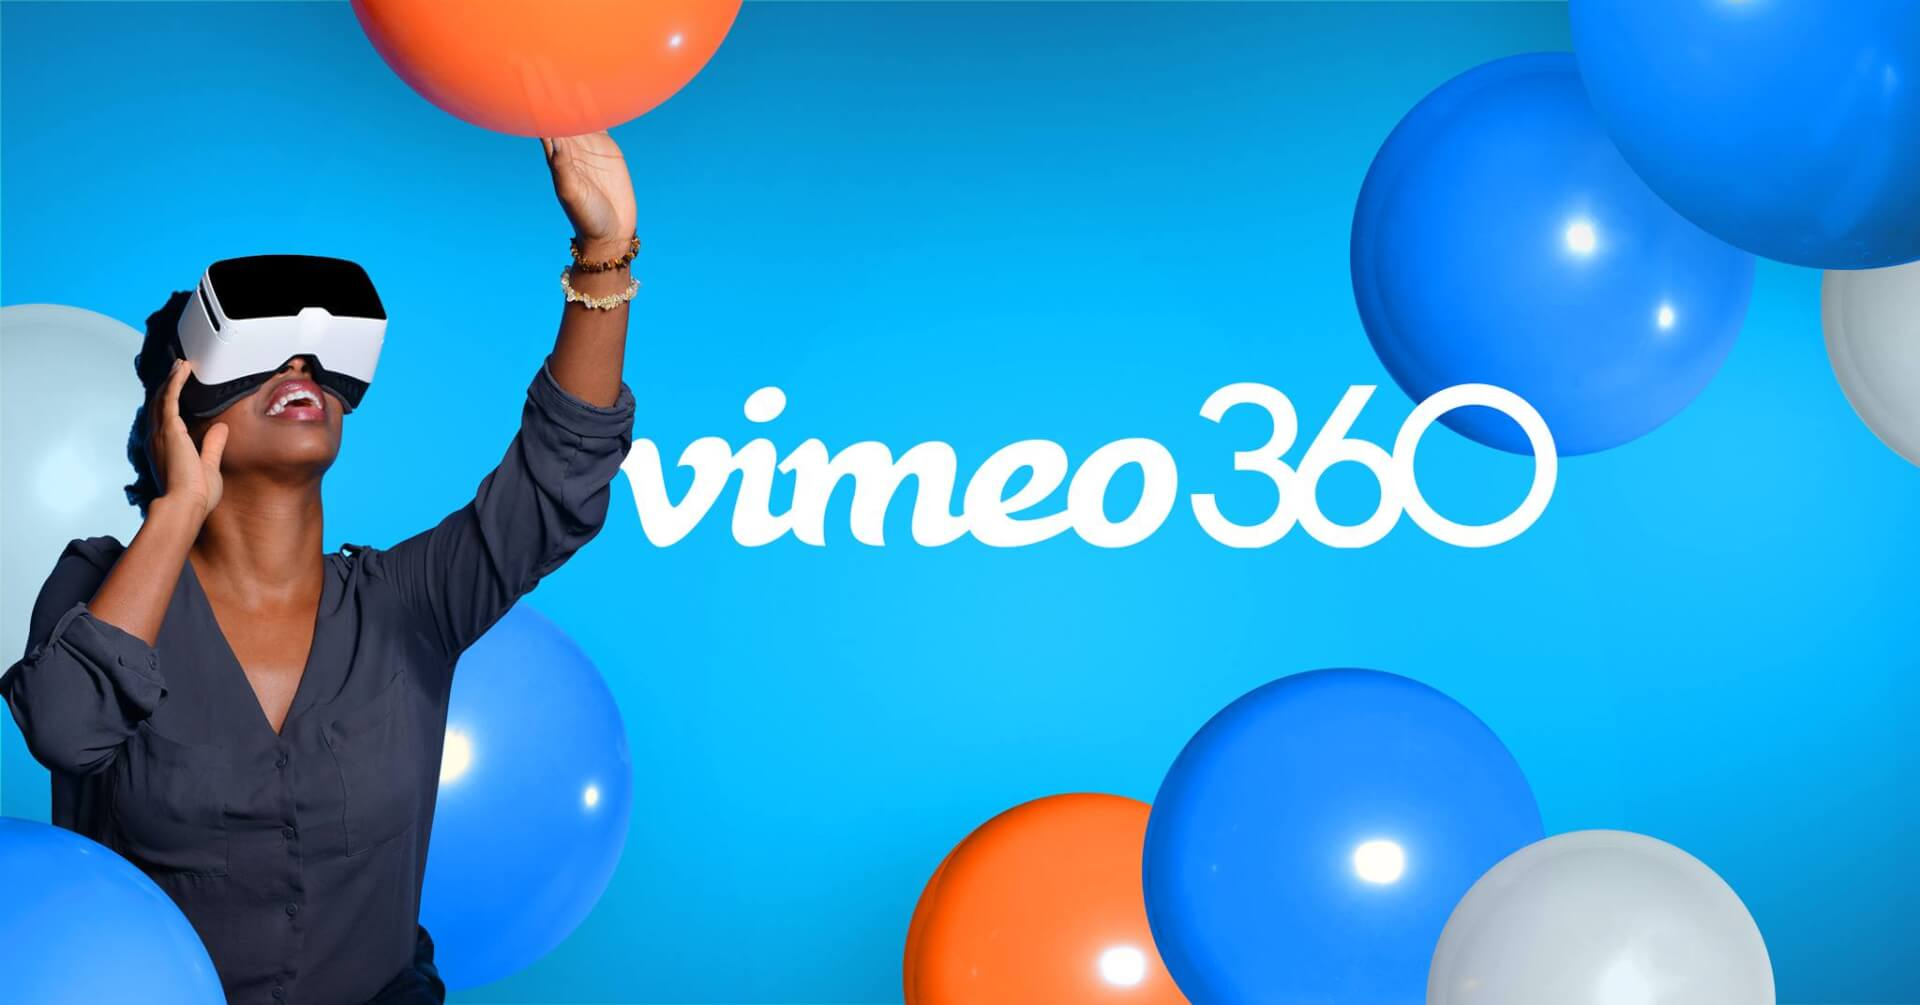 vimeo 360 video